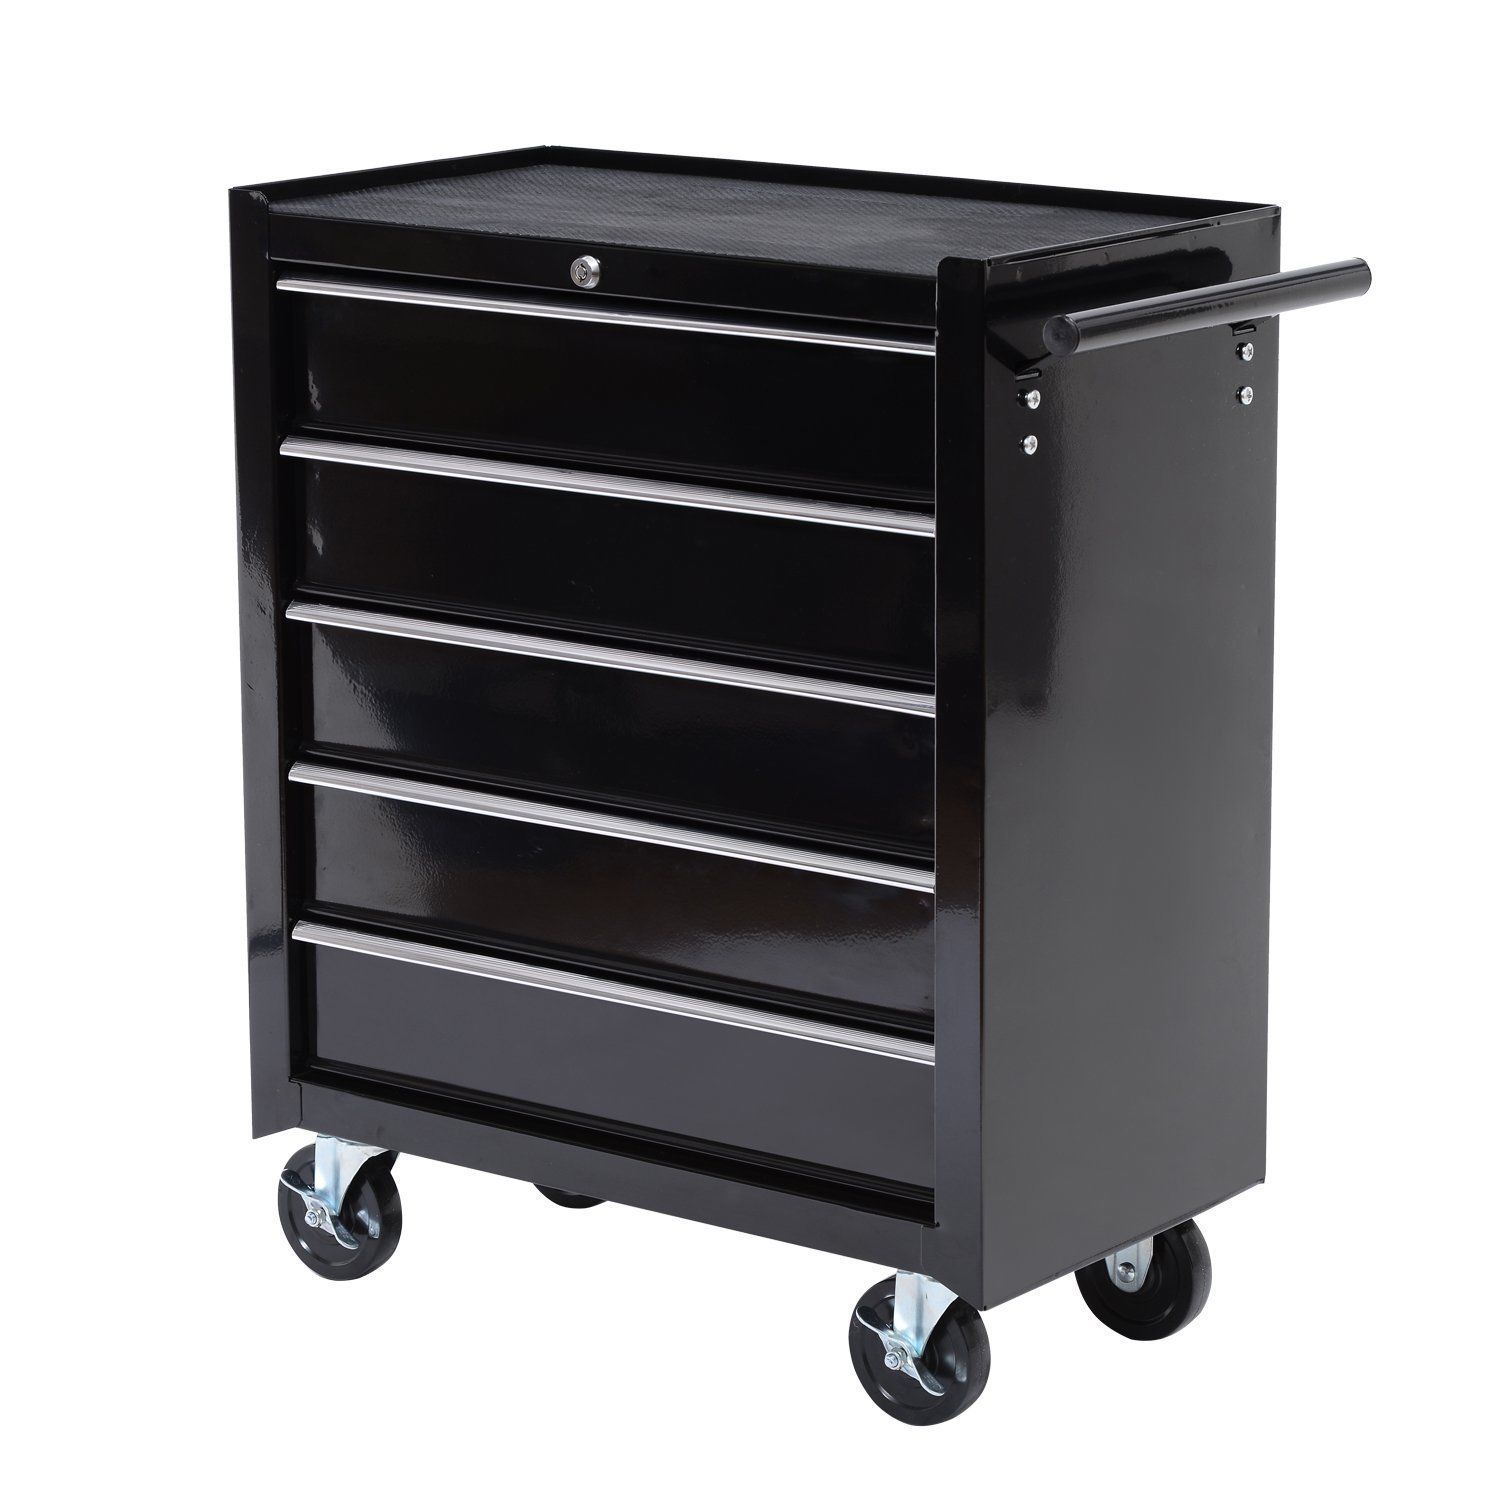 rolling toolbox 5 drawers lock storage tool cabinet chest cart casters black ebay. Black Bedroom Furniture Sets. Home Design Ideas